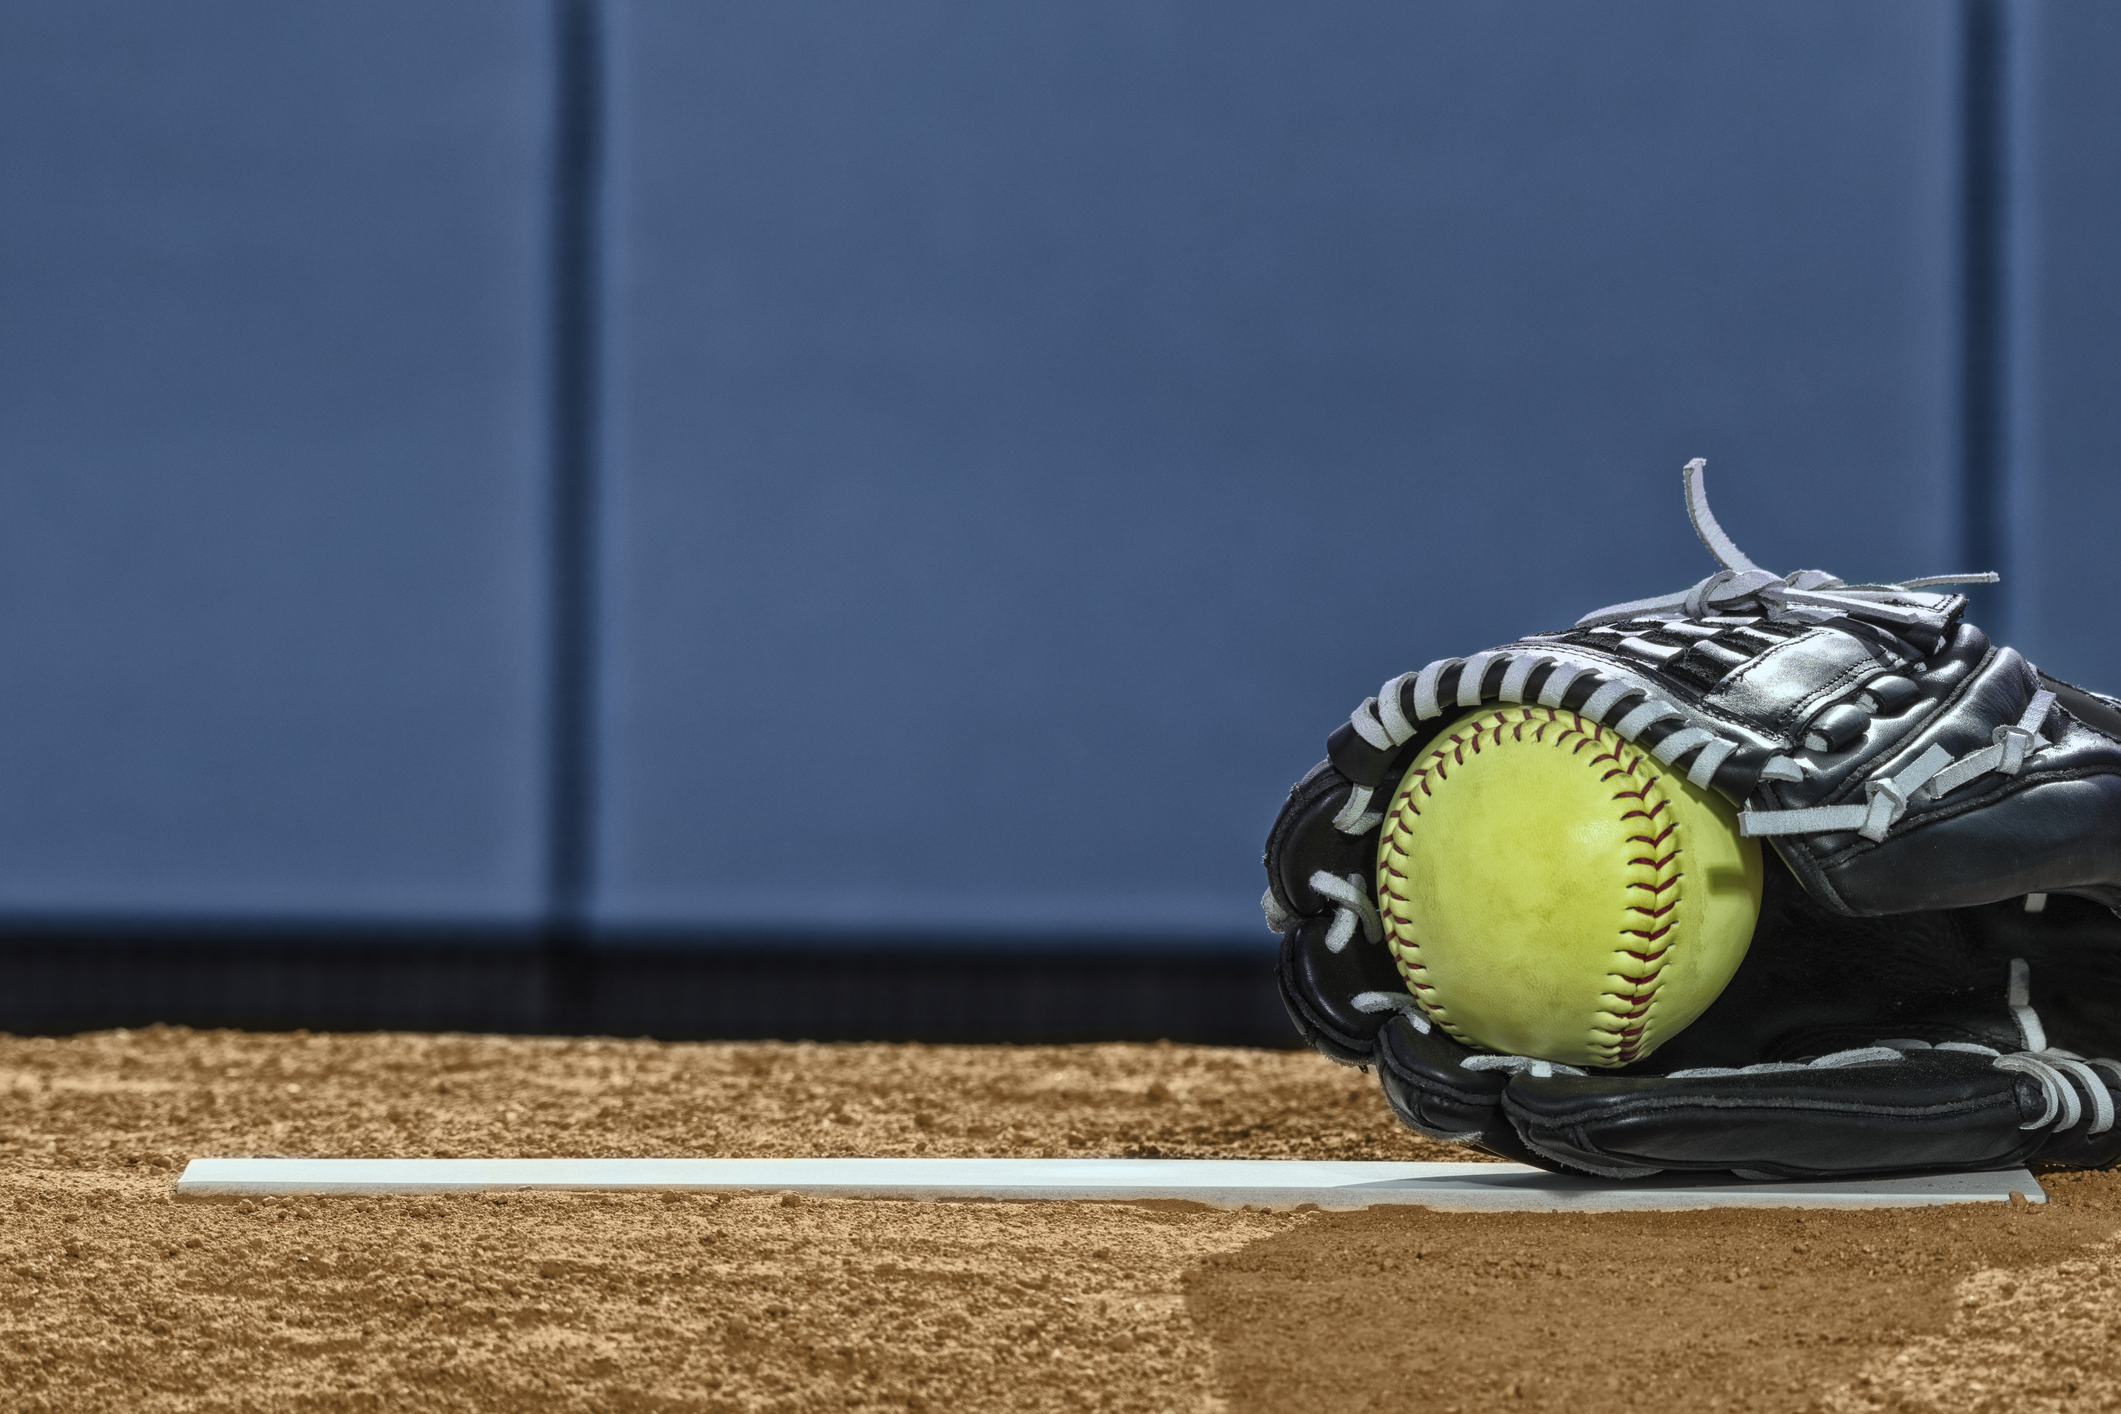 A low angle view of a new yellow softball in a black leather glove with white laces sitting of the rubber of a pitcher's mound with a blue padded wall in the background